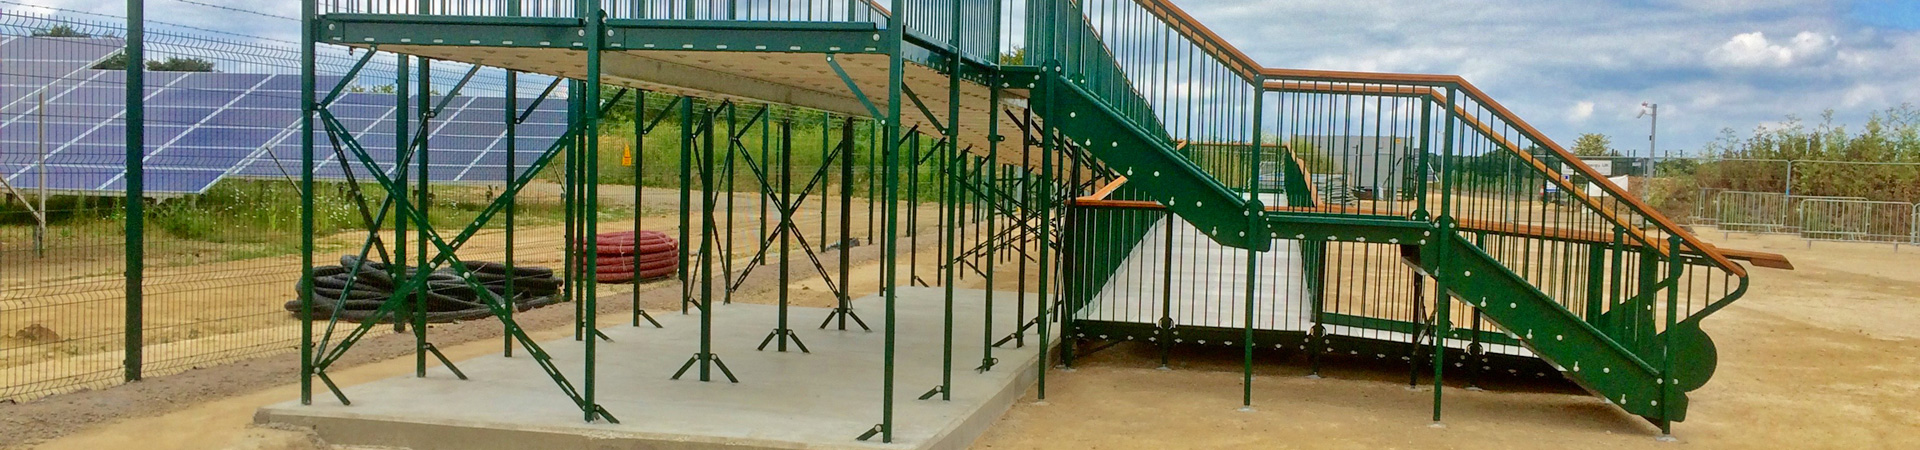 Modular Access Ramps Buy Back Option